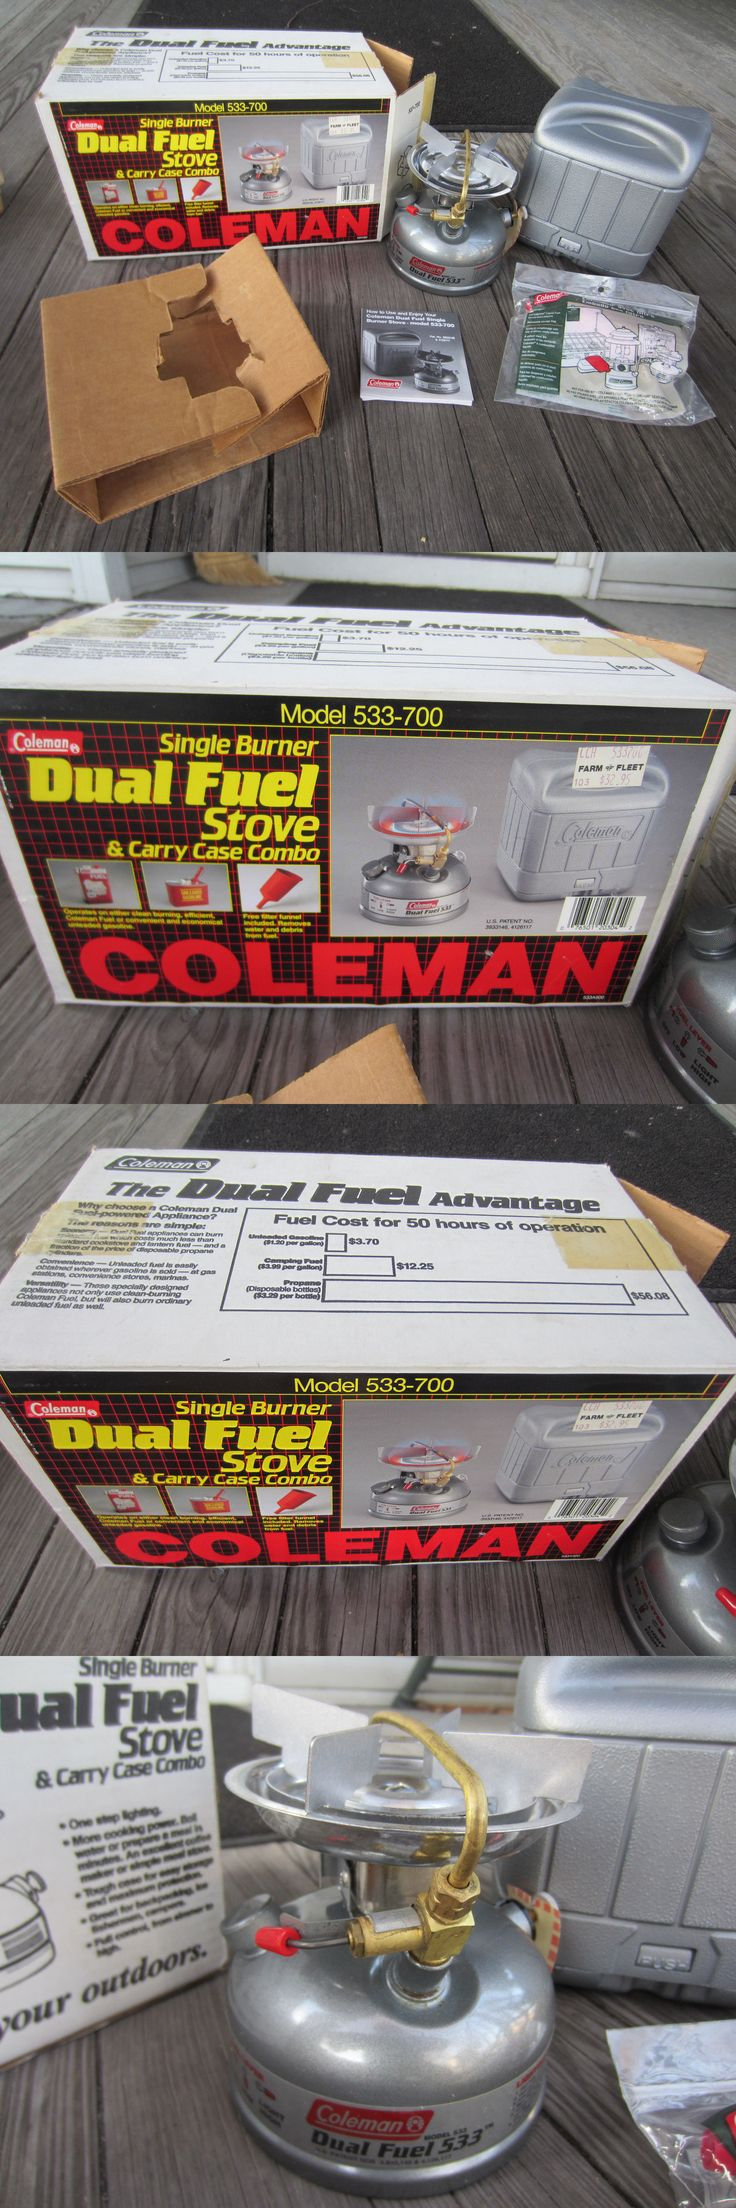 Best 25+ Coleman dual fuel stove ideas on Pinterest | Camping 101 ...